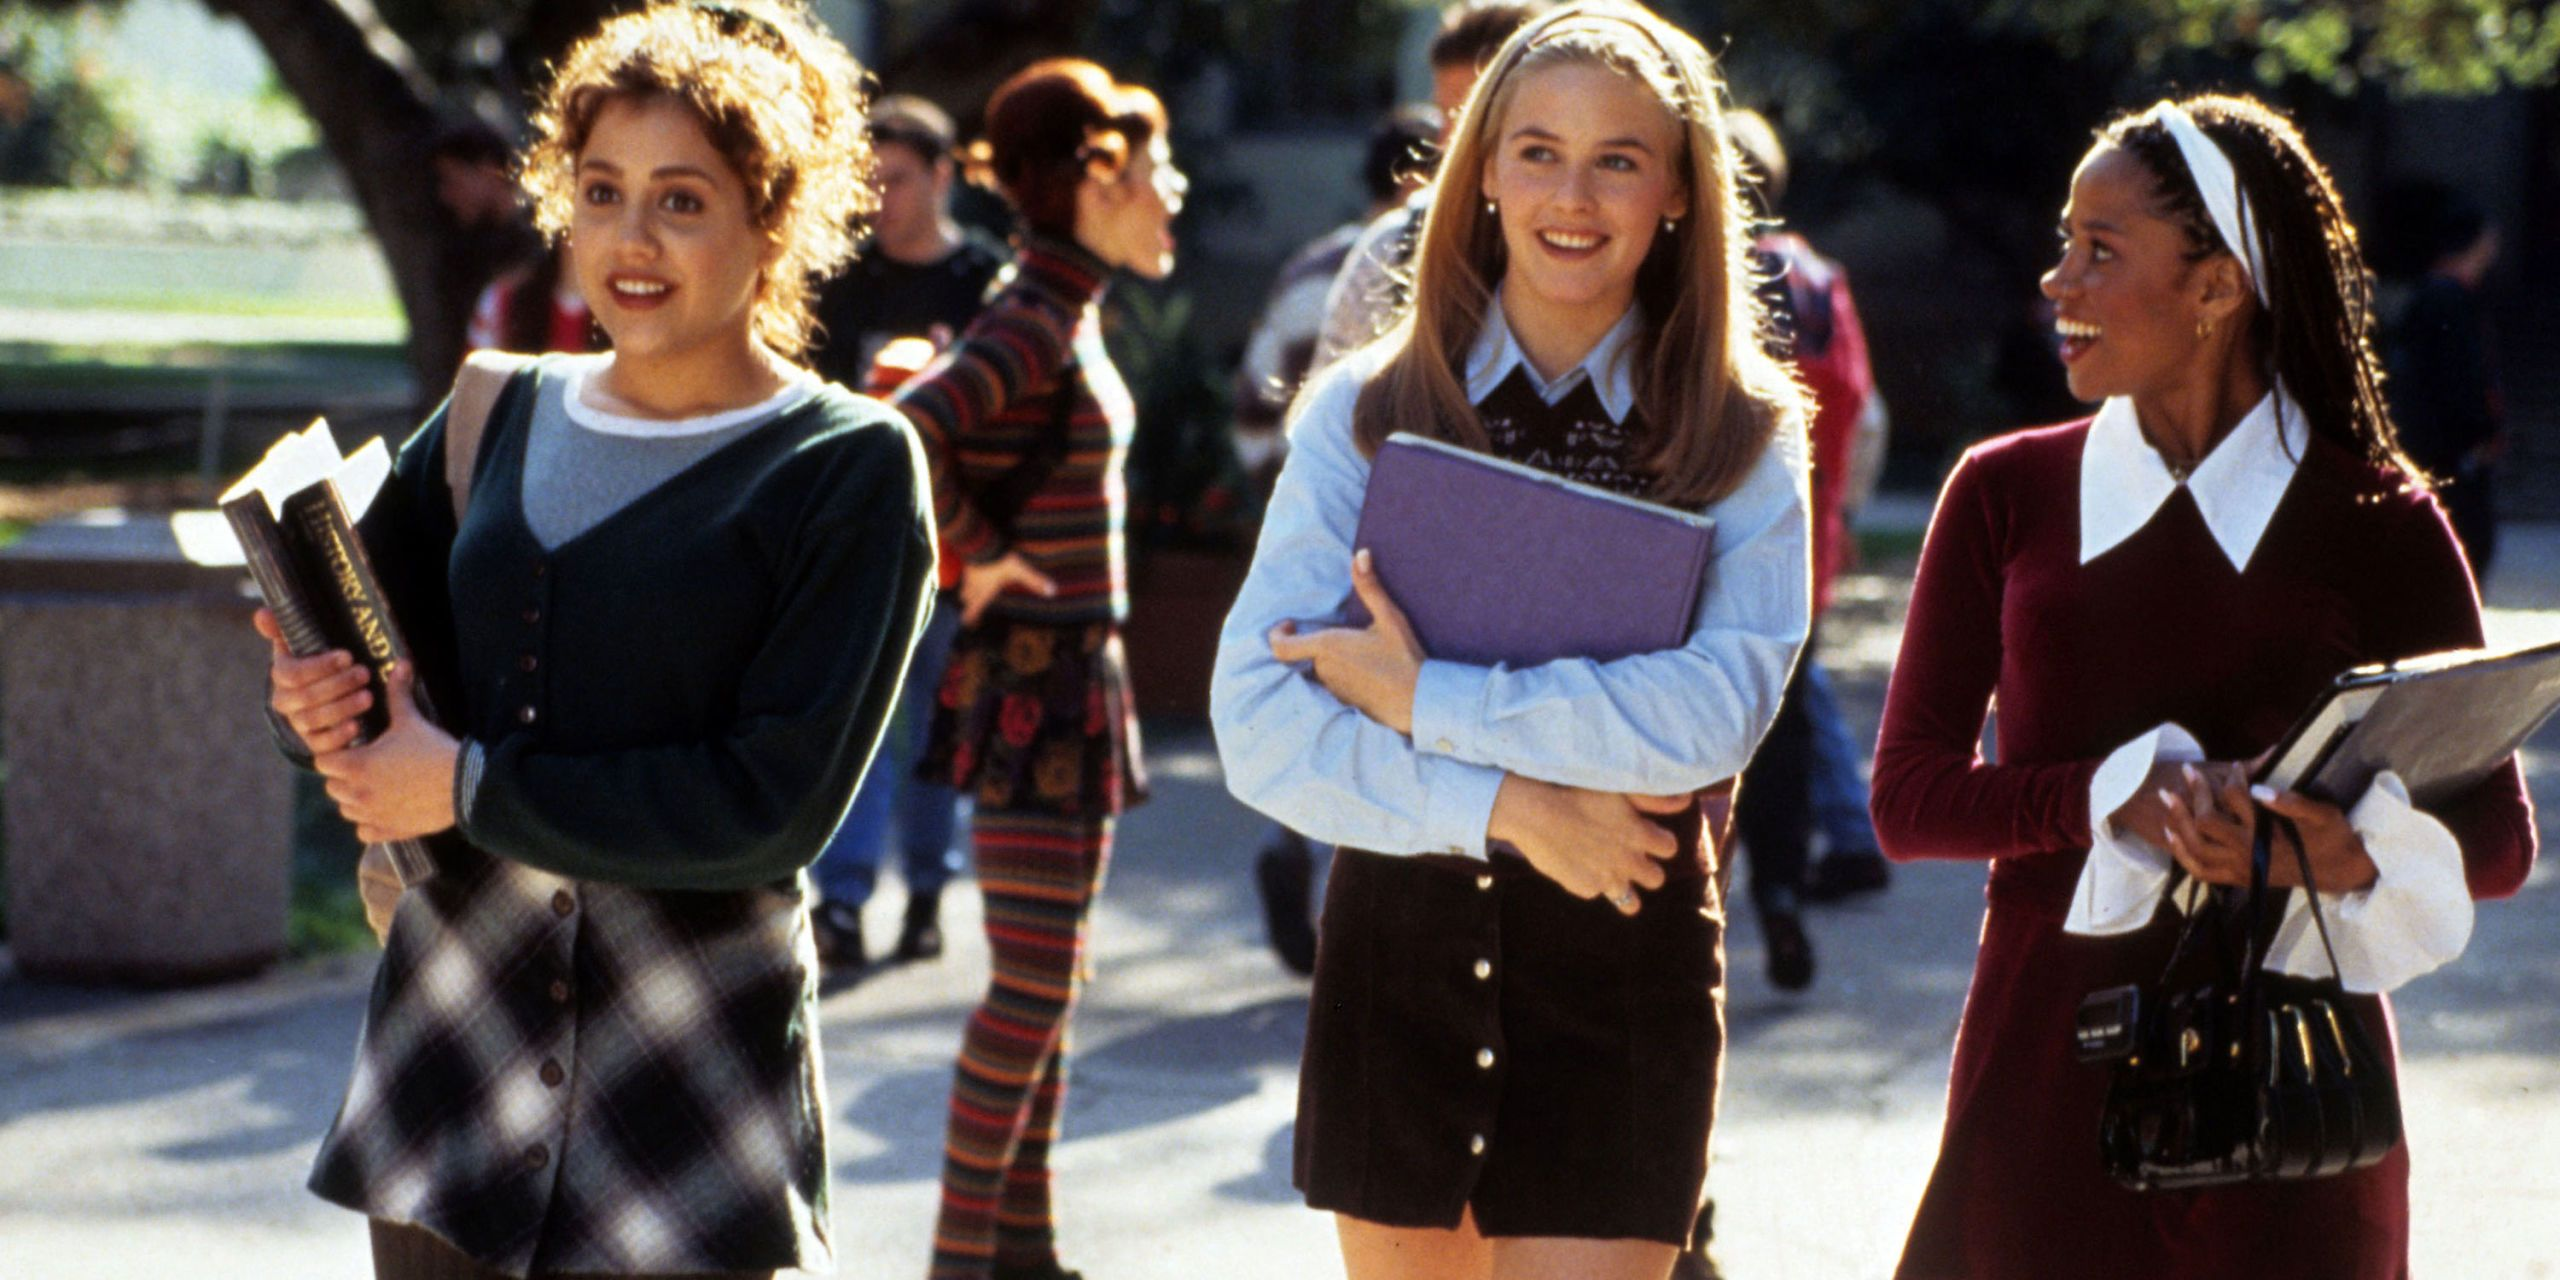 Clueless fashion and outfits